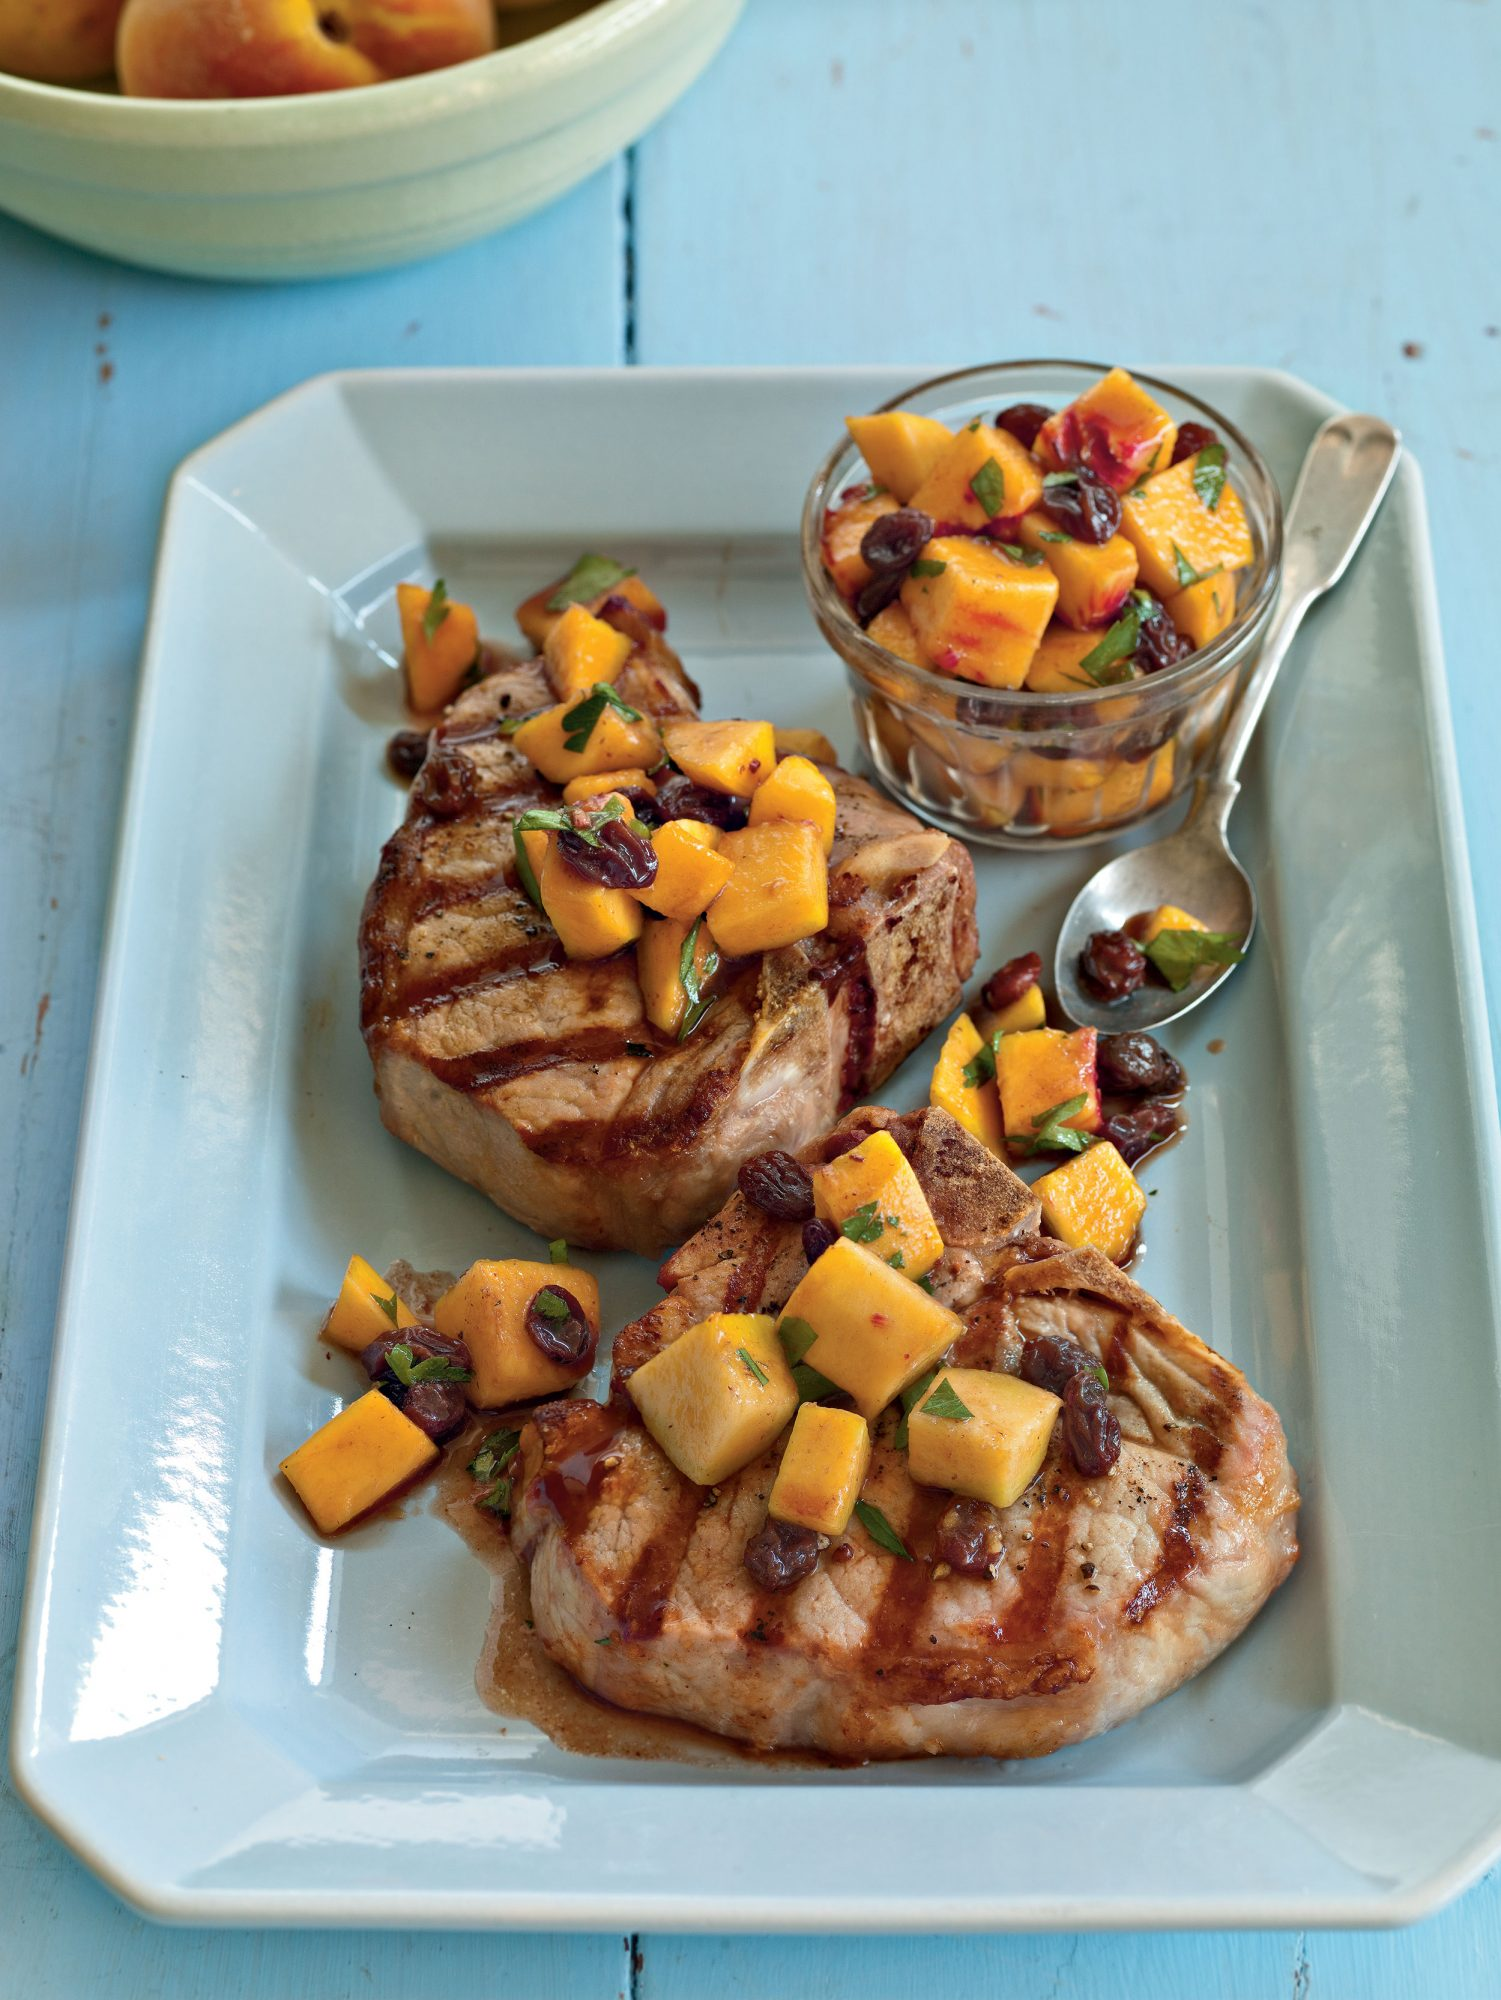 Grilled Pork Porterhouse with Peach Agrodolce